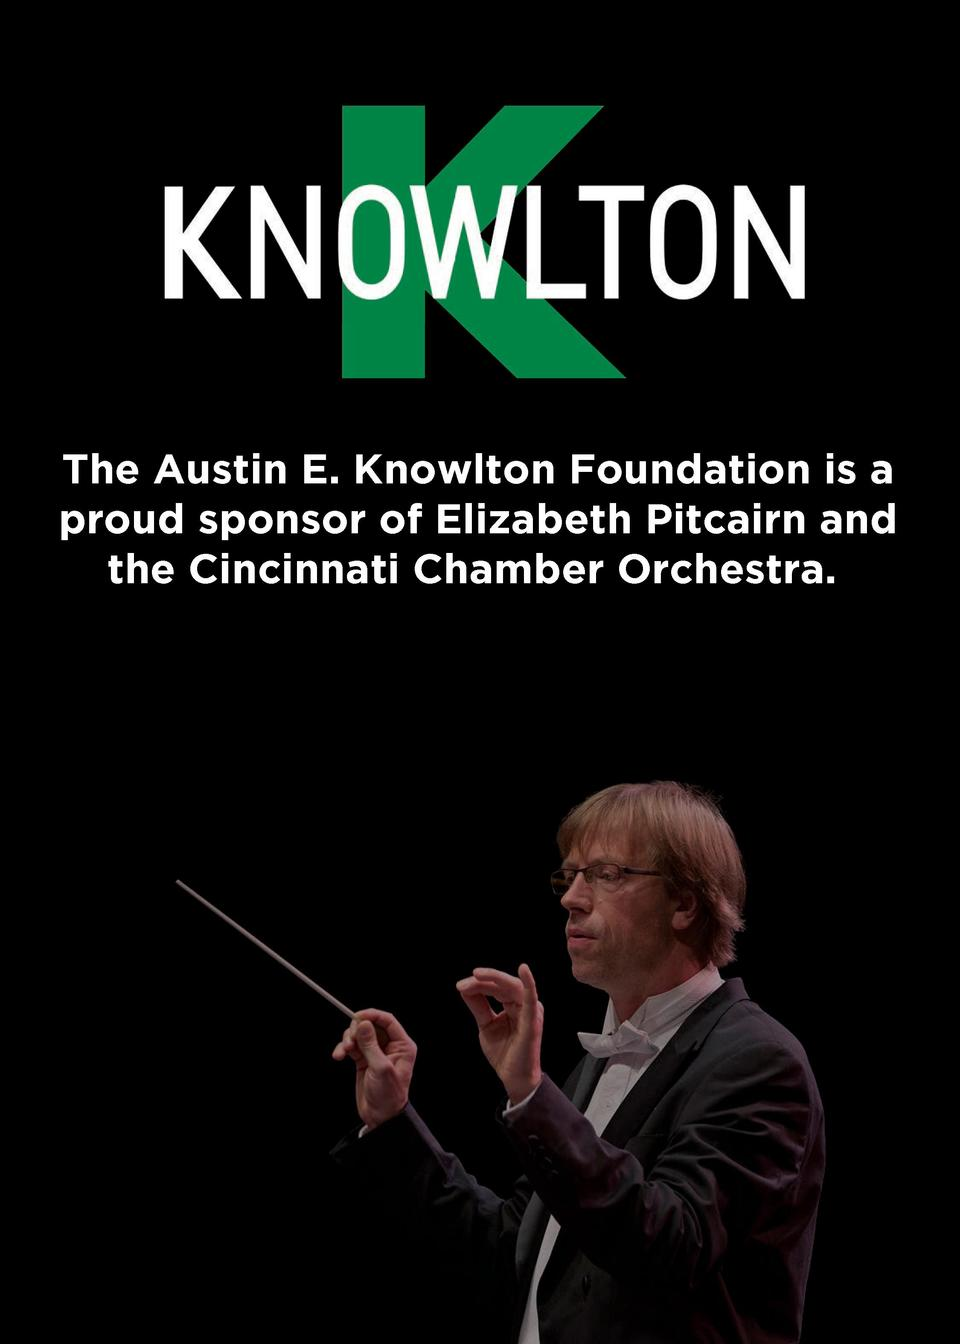 The Austin E. Knowlton Foundation is a proud sponsor of Elizabeth Pitcairn and the Cincinnati Chamber Orchestra.  S U M M ...